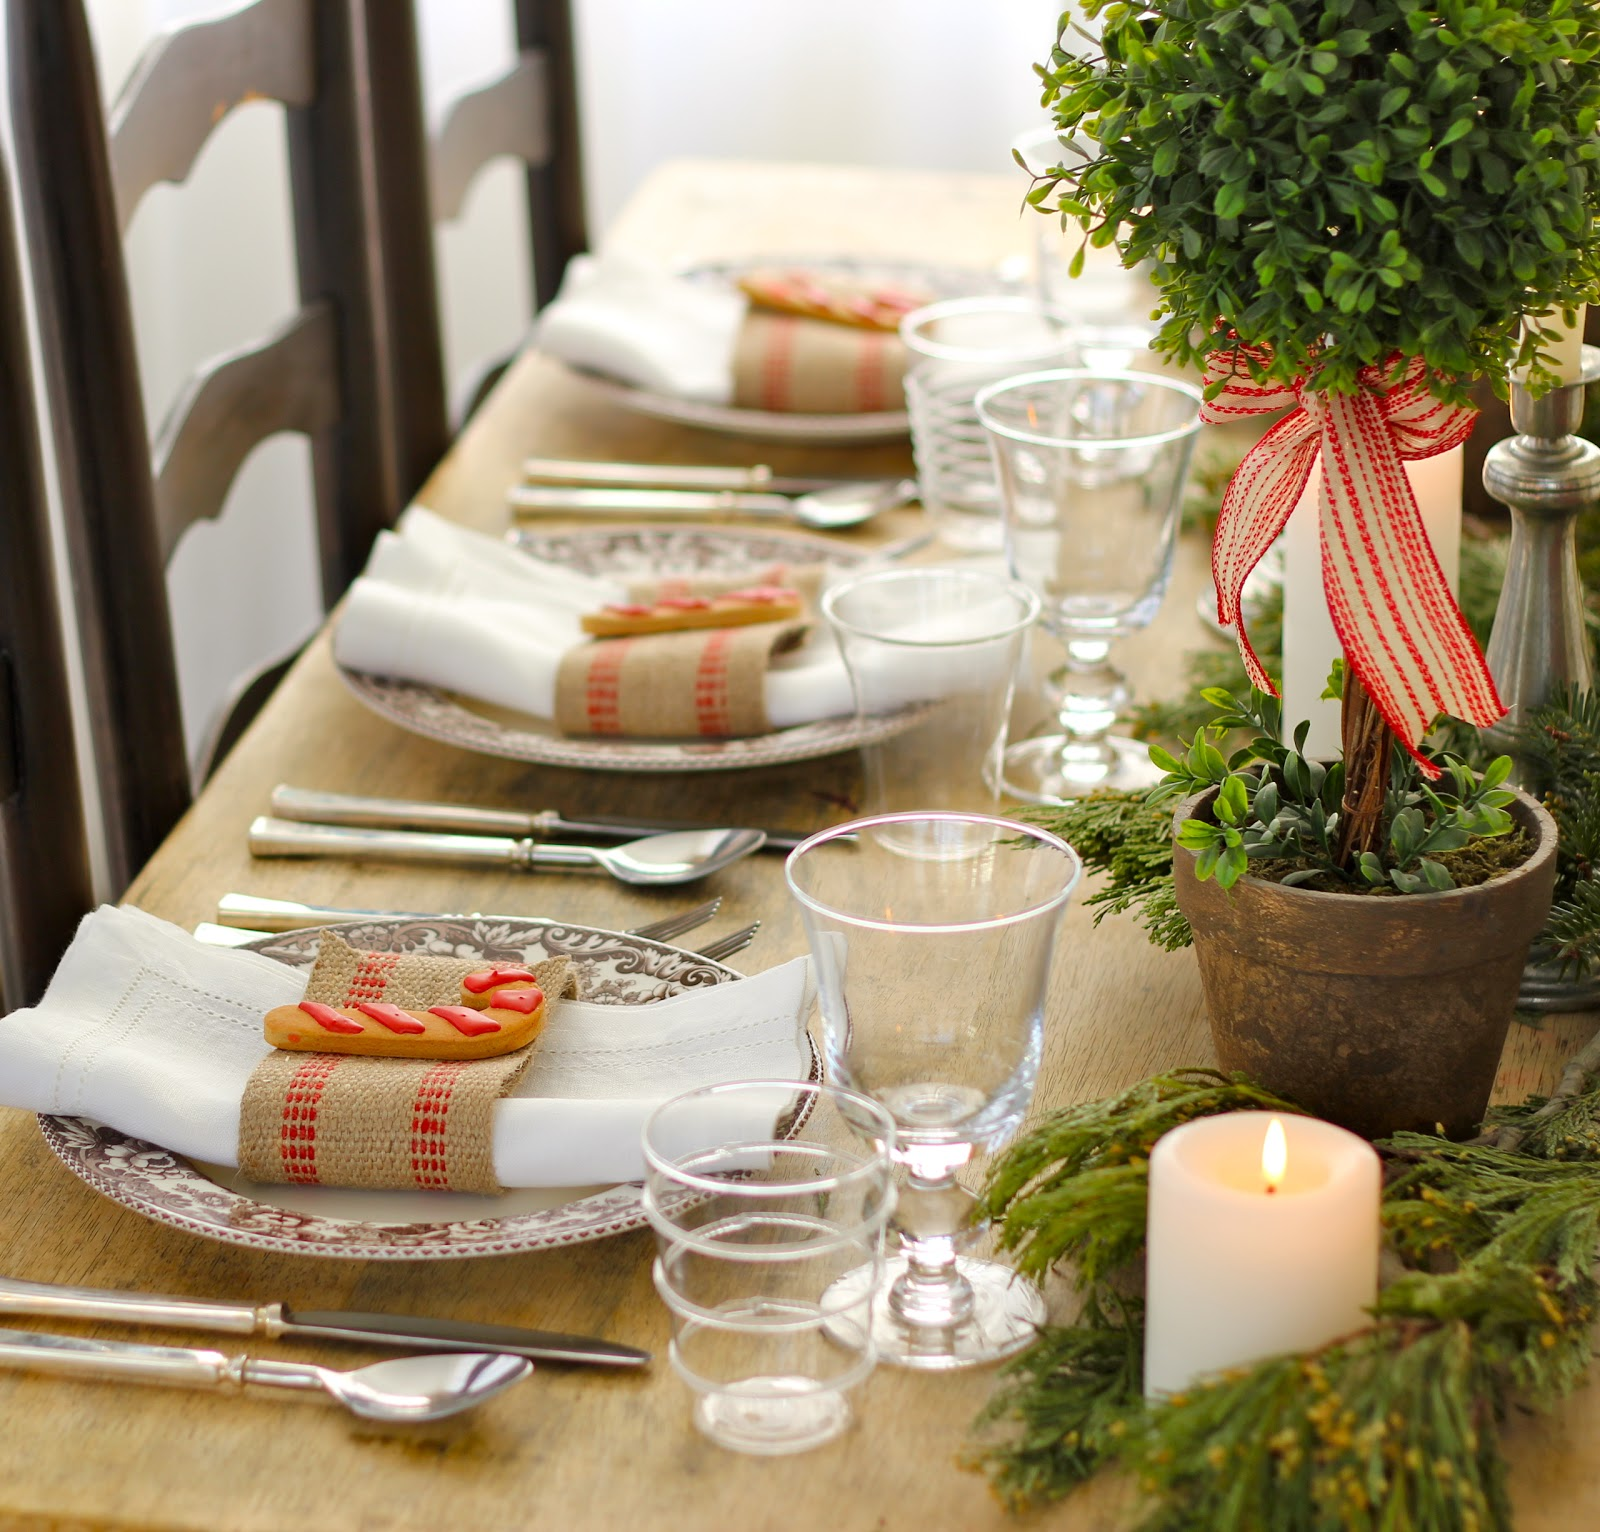 holiday table setting centerpiece ideas for christmas table - How To Decorate A Christmas Table